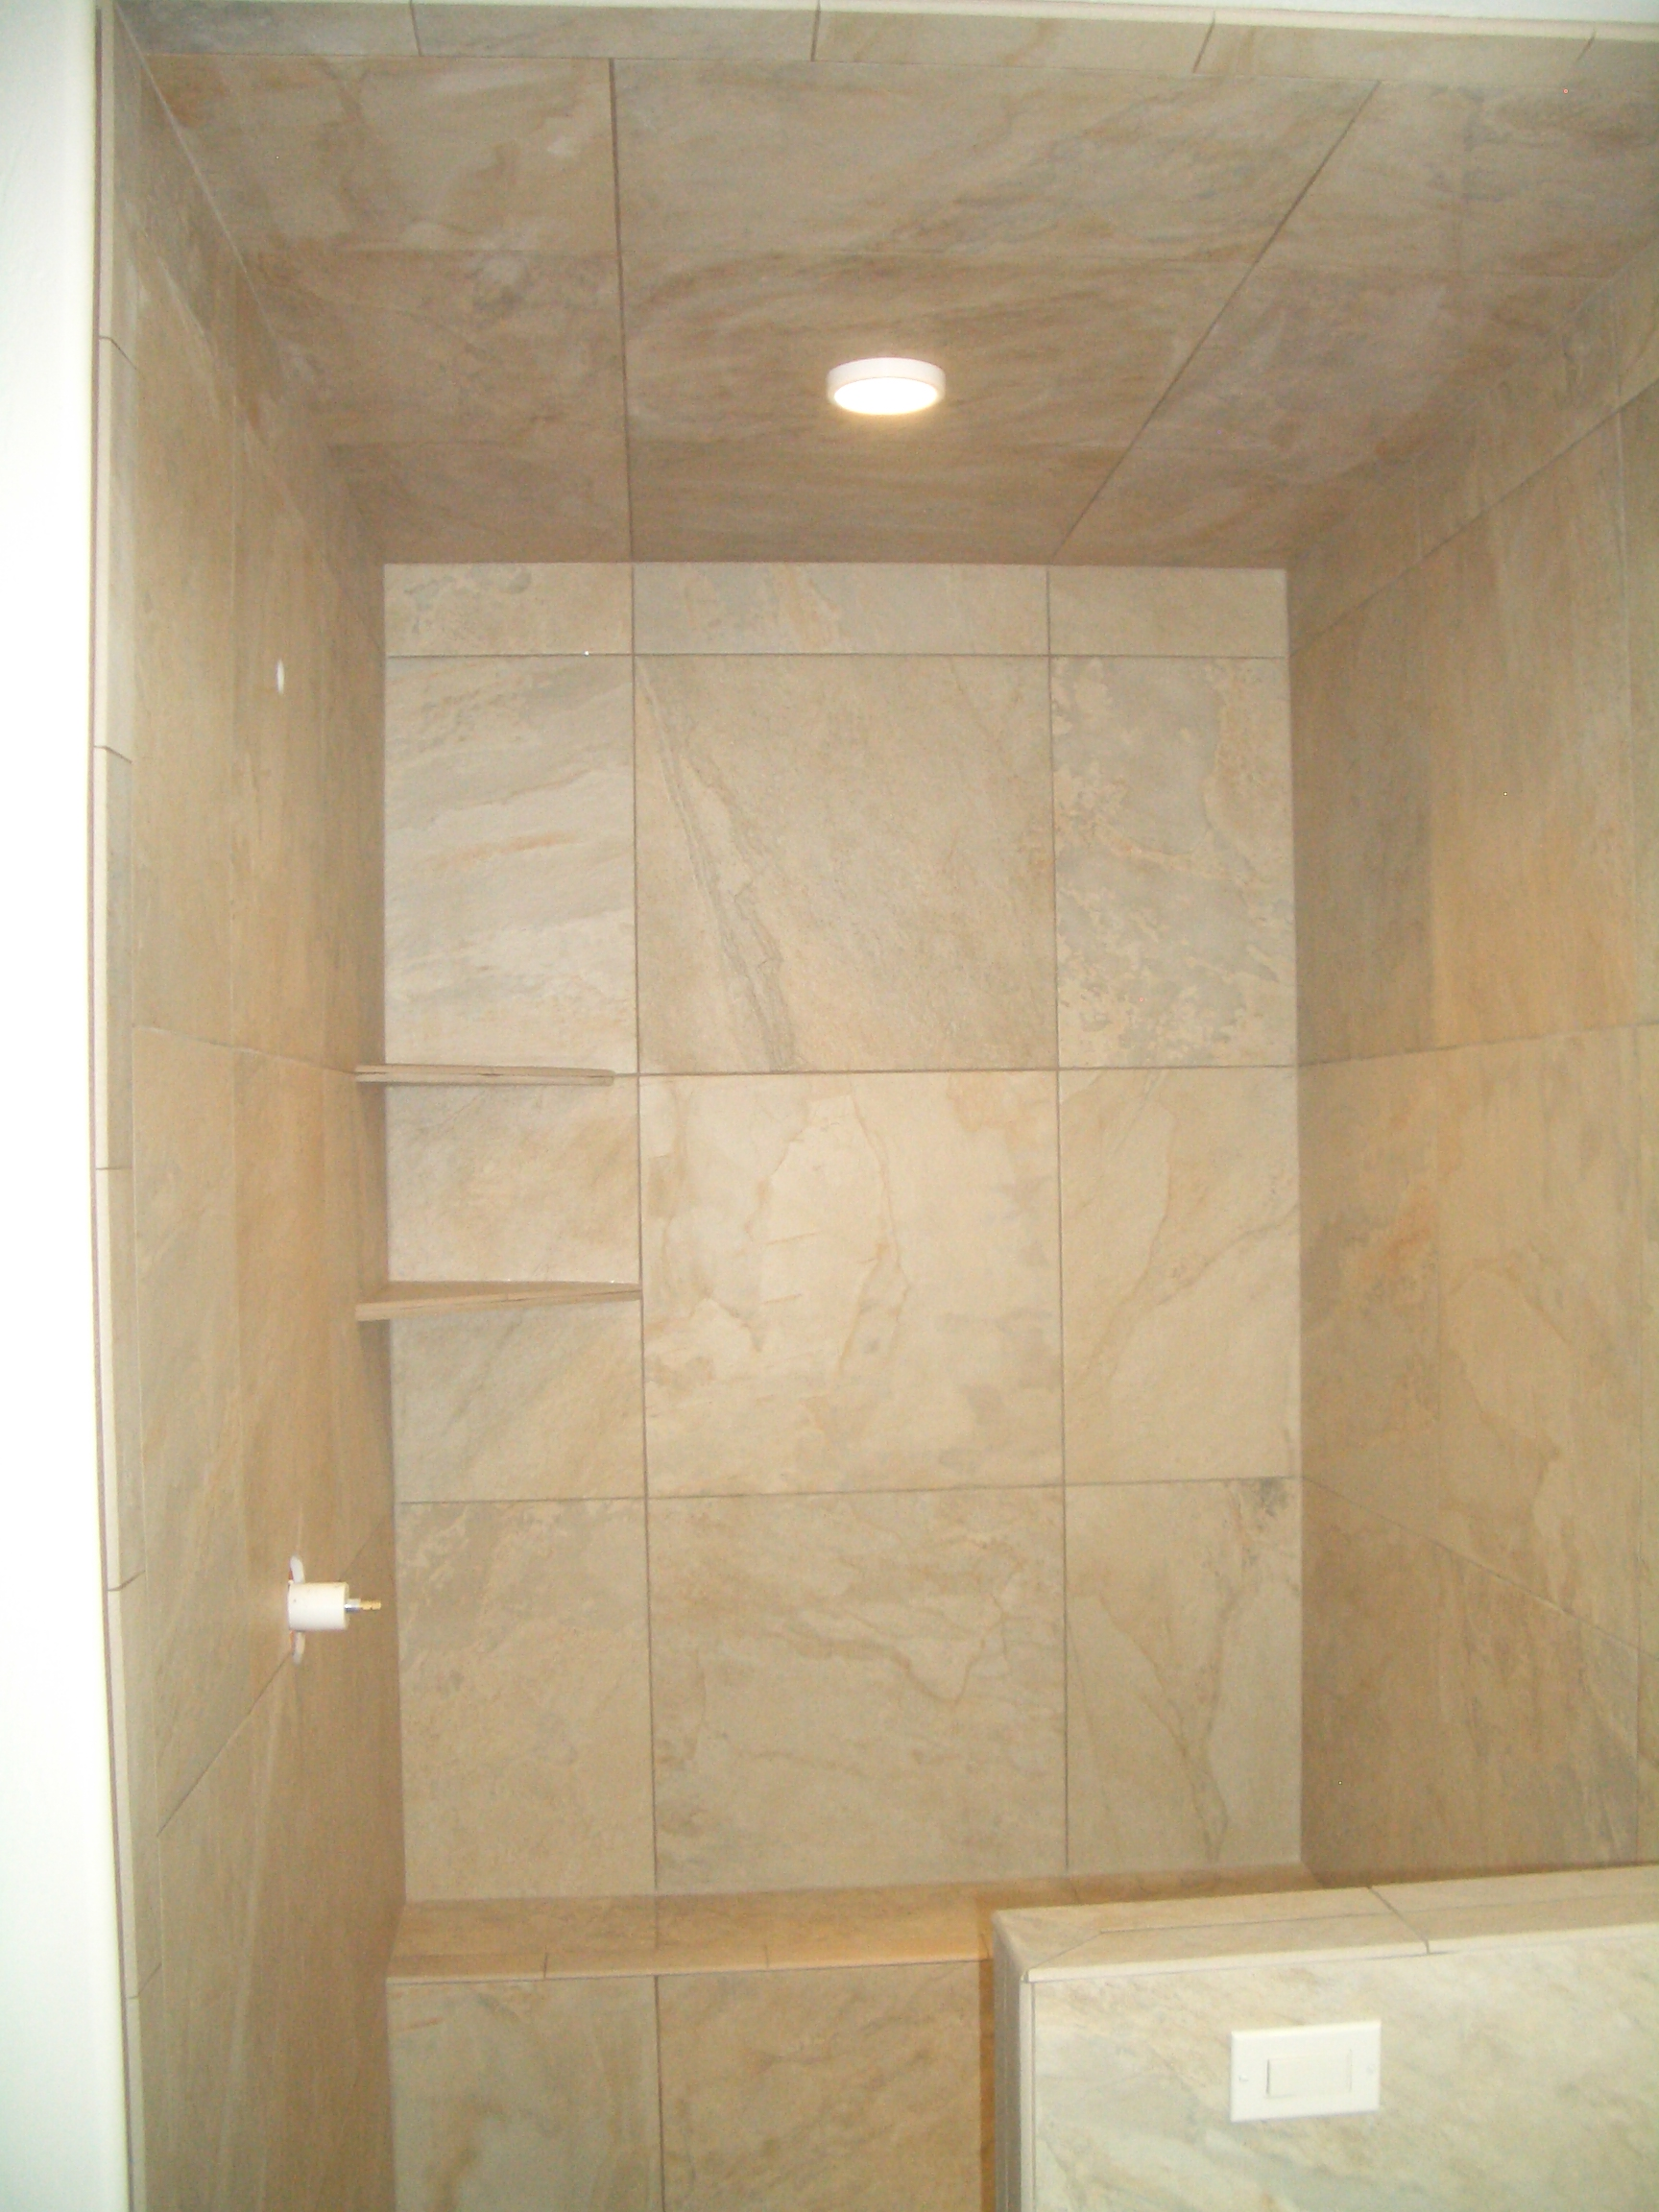 How To Install Large Wall Tiles In Shower - Image Bathroom 2017